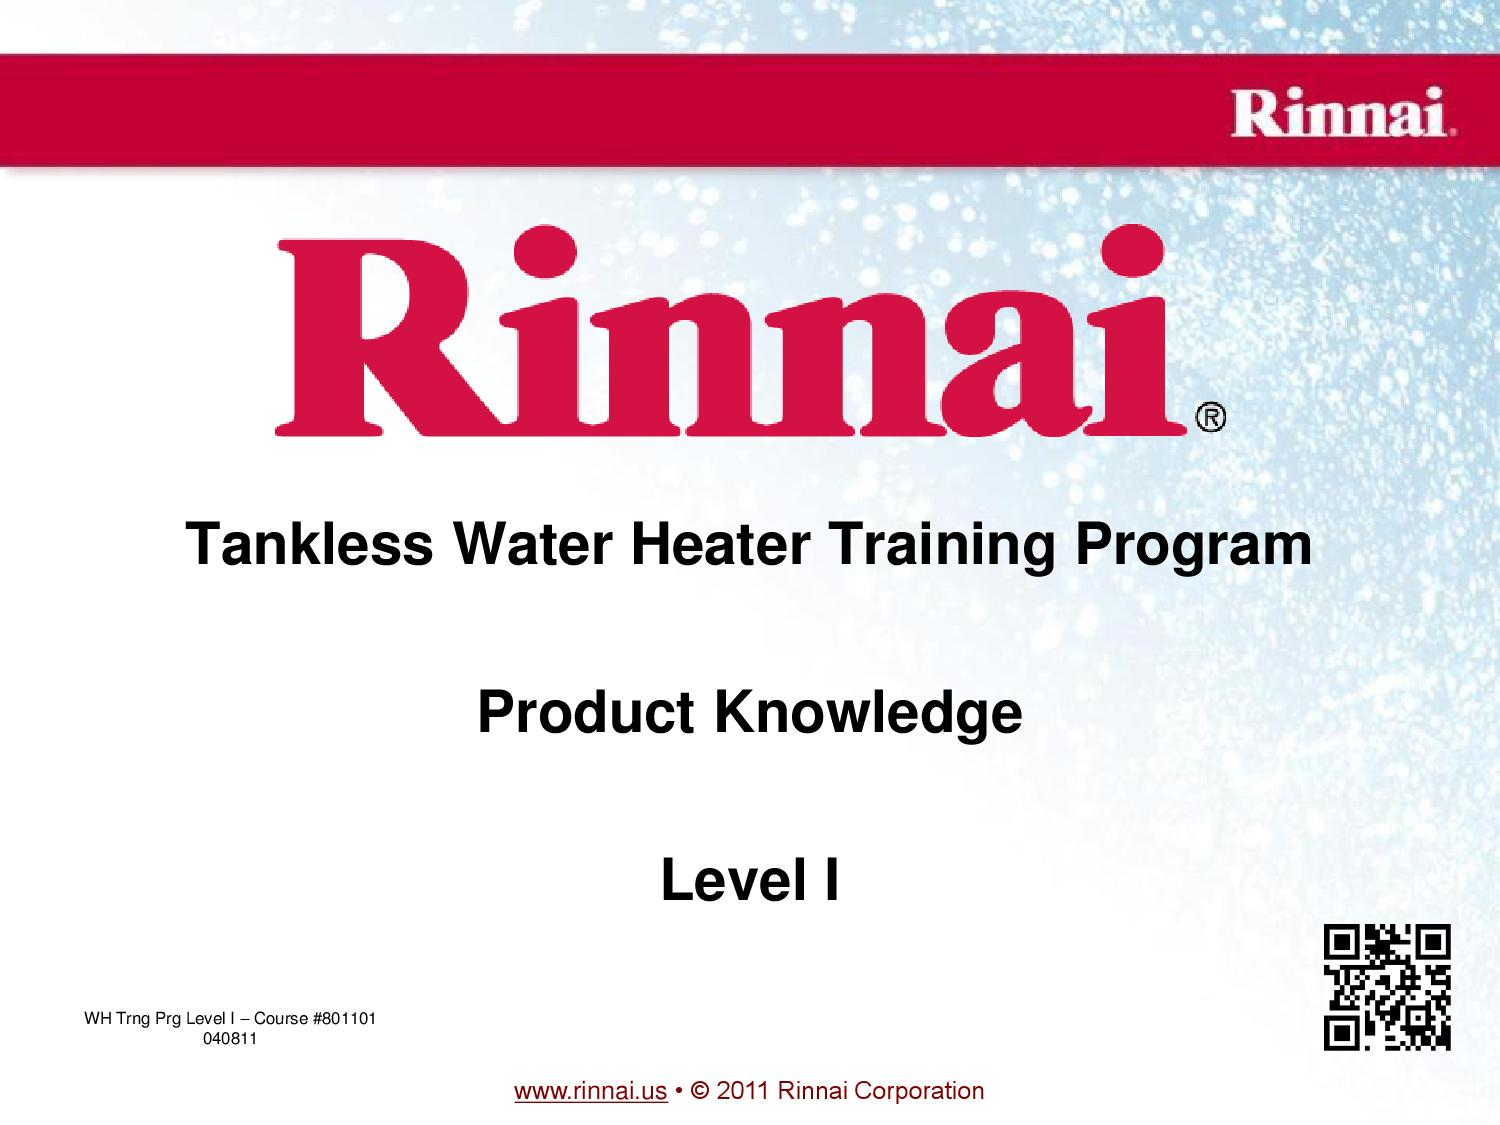 rinnai training manual by darryl gibson issuu rh issuu com Rinnai Heating Rinnai Heating